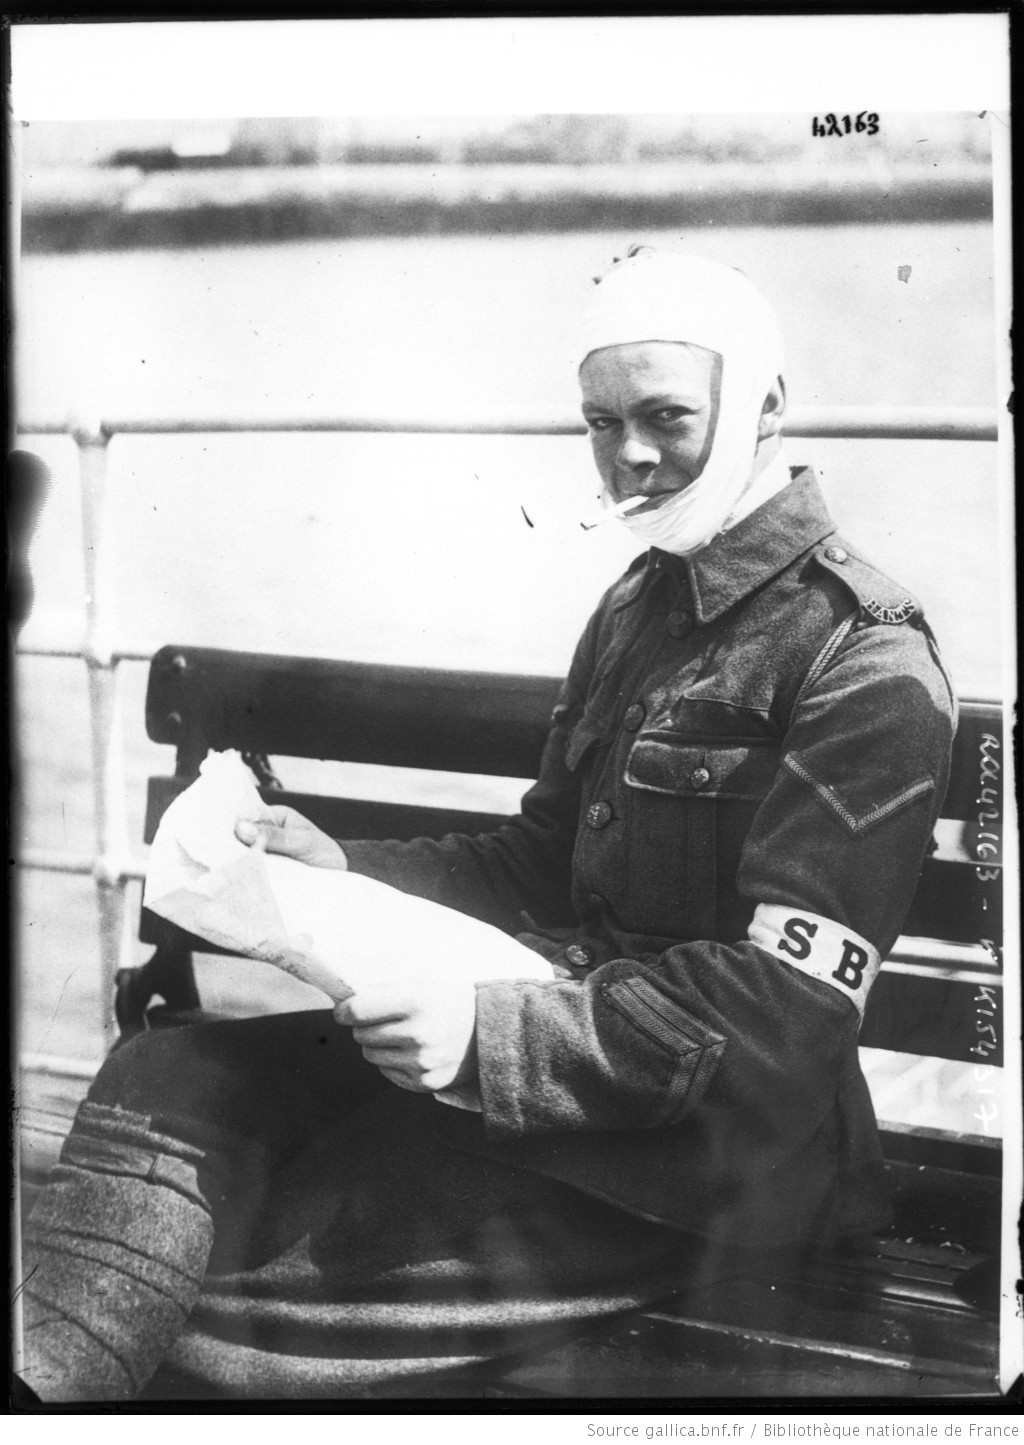 A wounded Stretcher-Bearer of the Hampshire Regiment being evacuated to England on a Hospital Ship from Le Havre in 1914. #WW1 https://t.co/73F47XqzrI